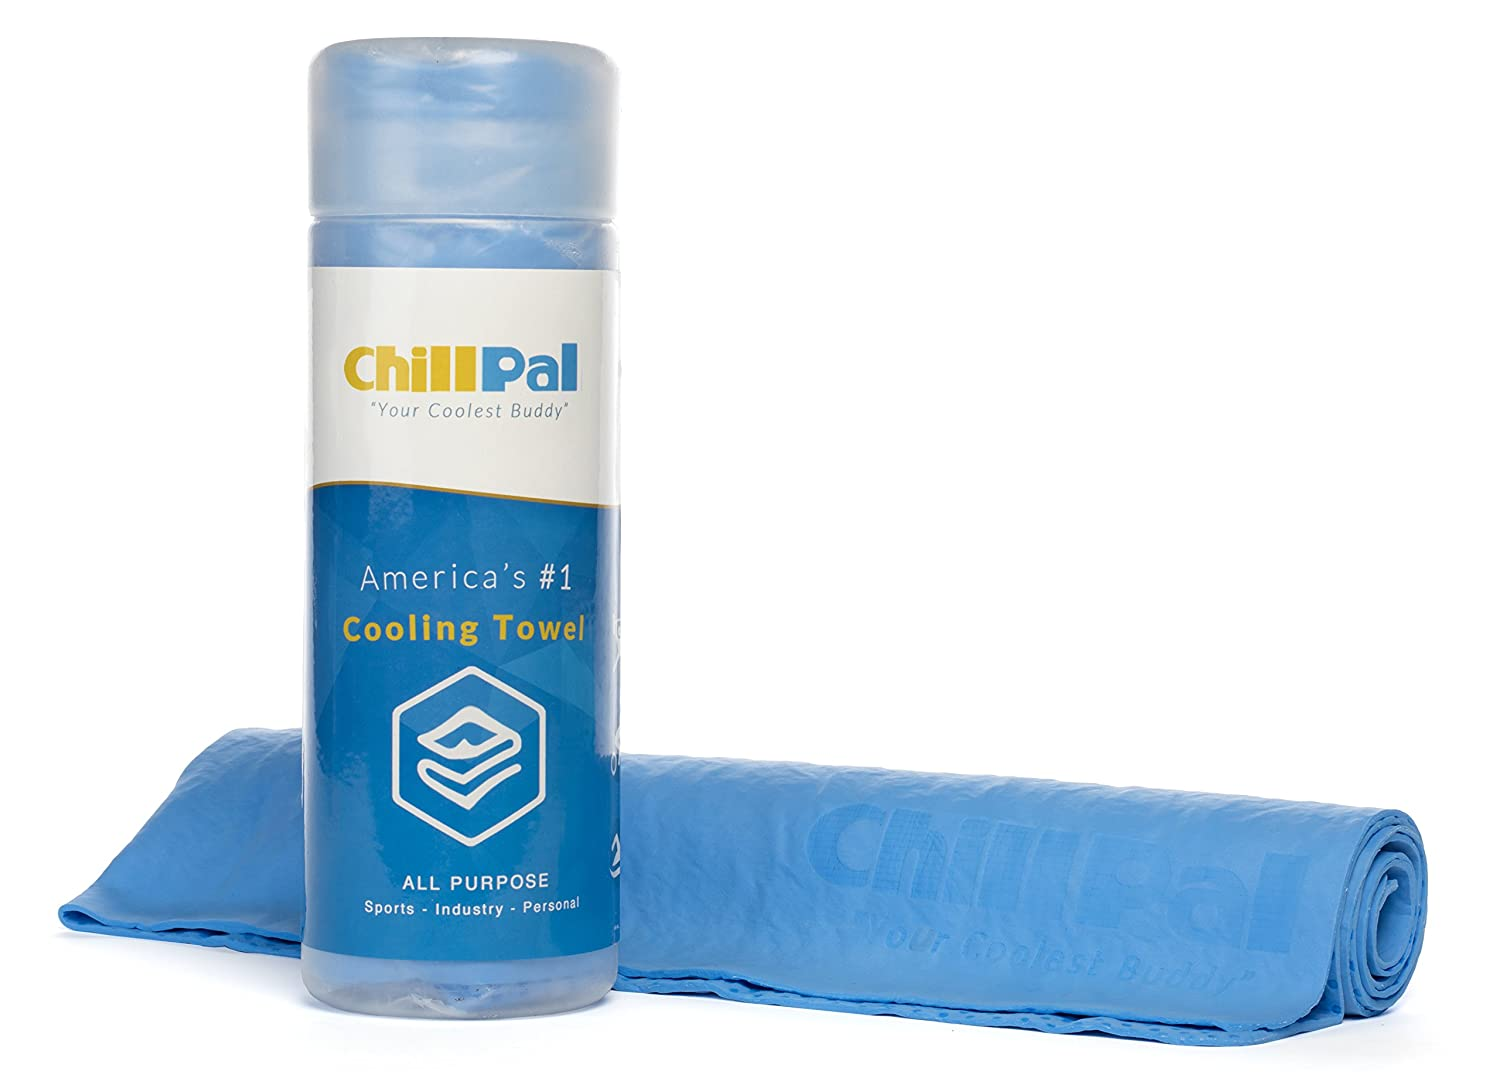 The Original Chill Pal Cooling Towel